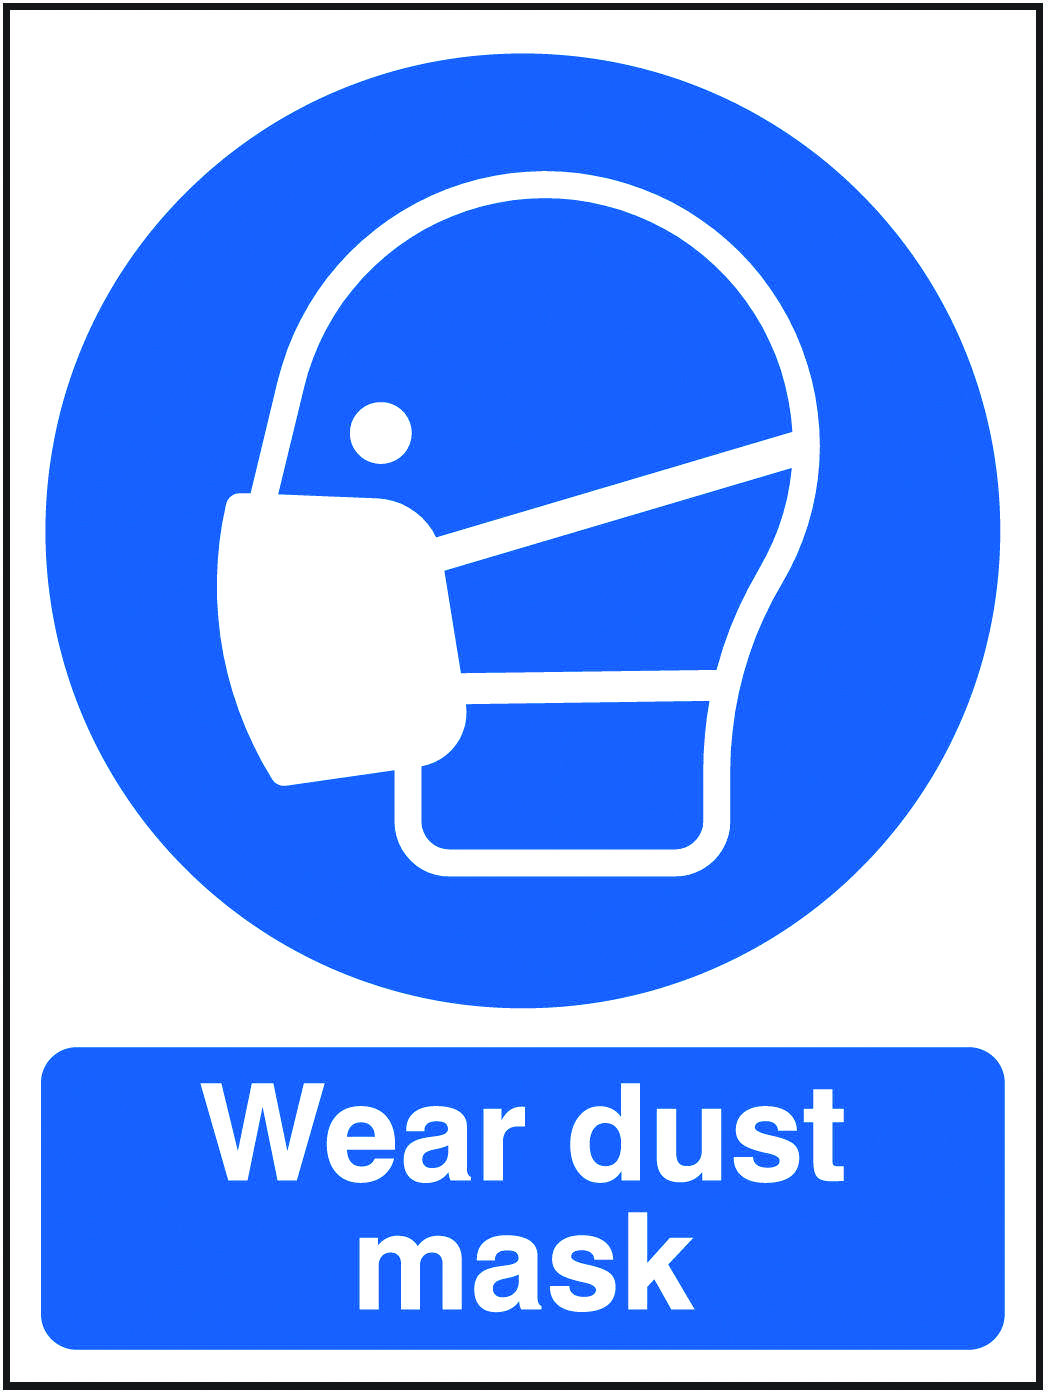 Wear dust mask sign. Beaverswood Identification Solutions